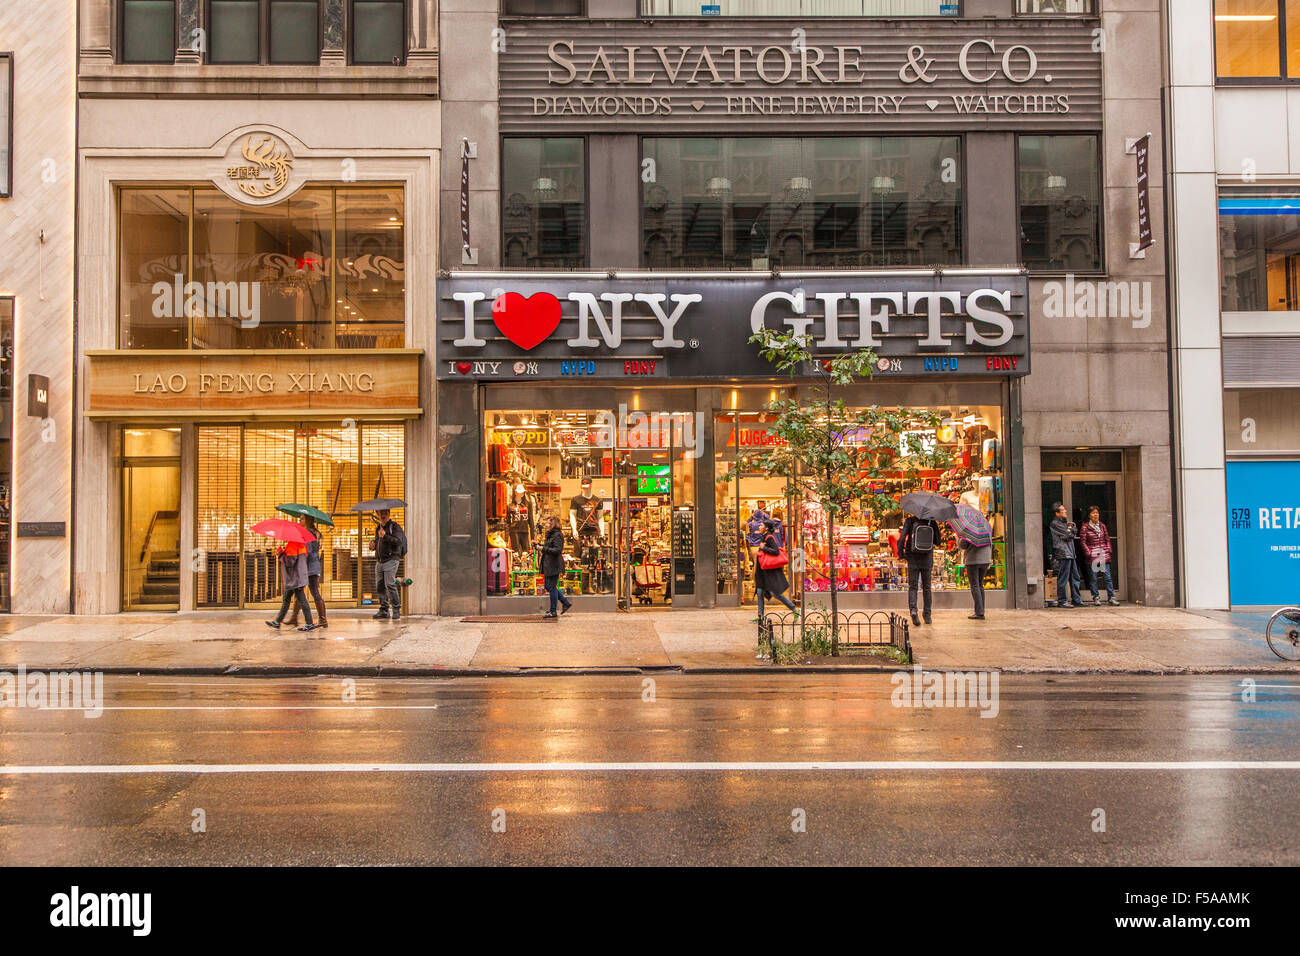 I love ny gift shops 5th avenue manhattan new york city united i love ny gift shops 5th avenue manhattan new york city united states of america negle Images